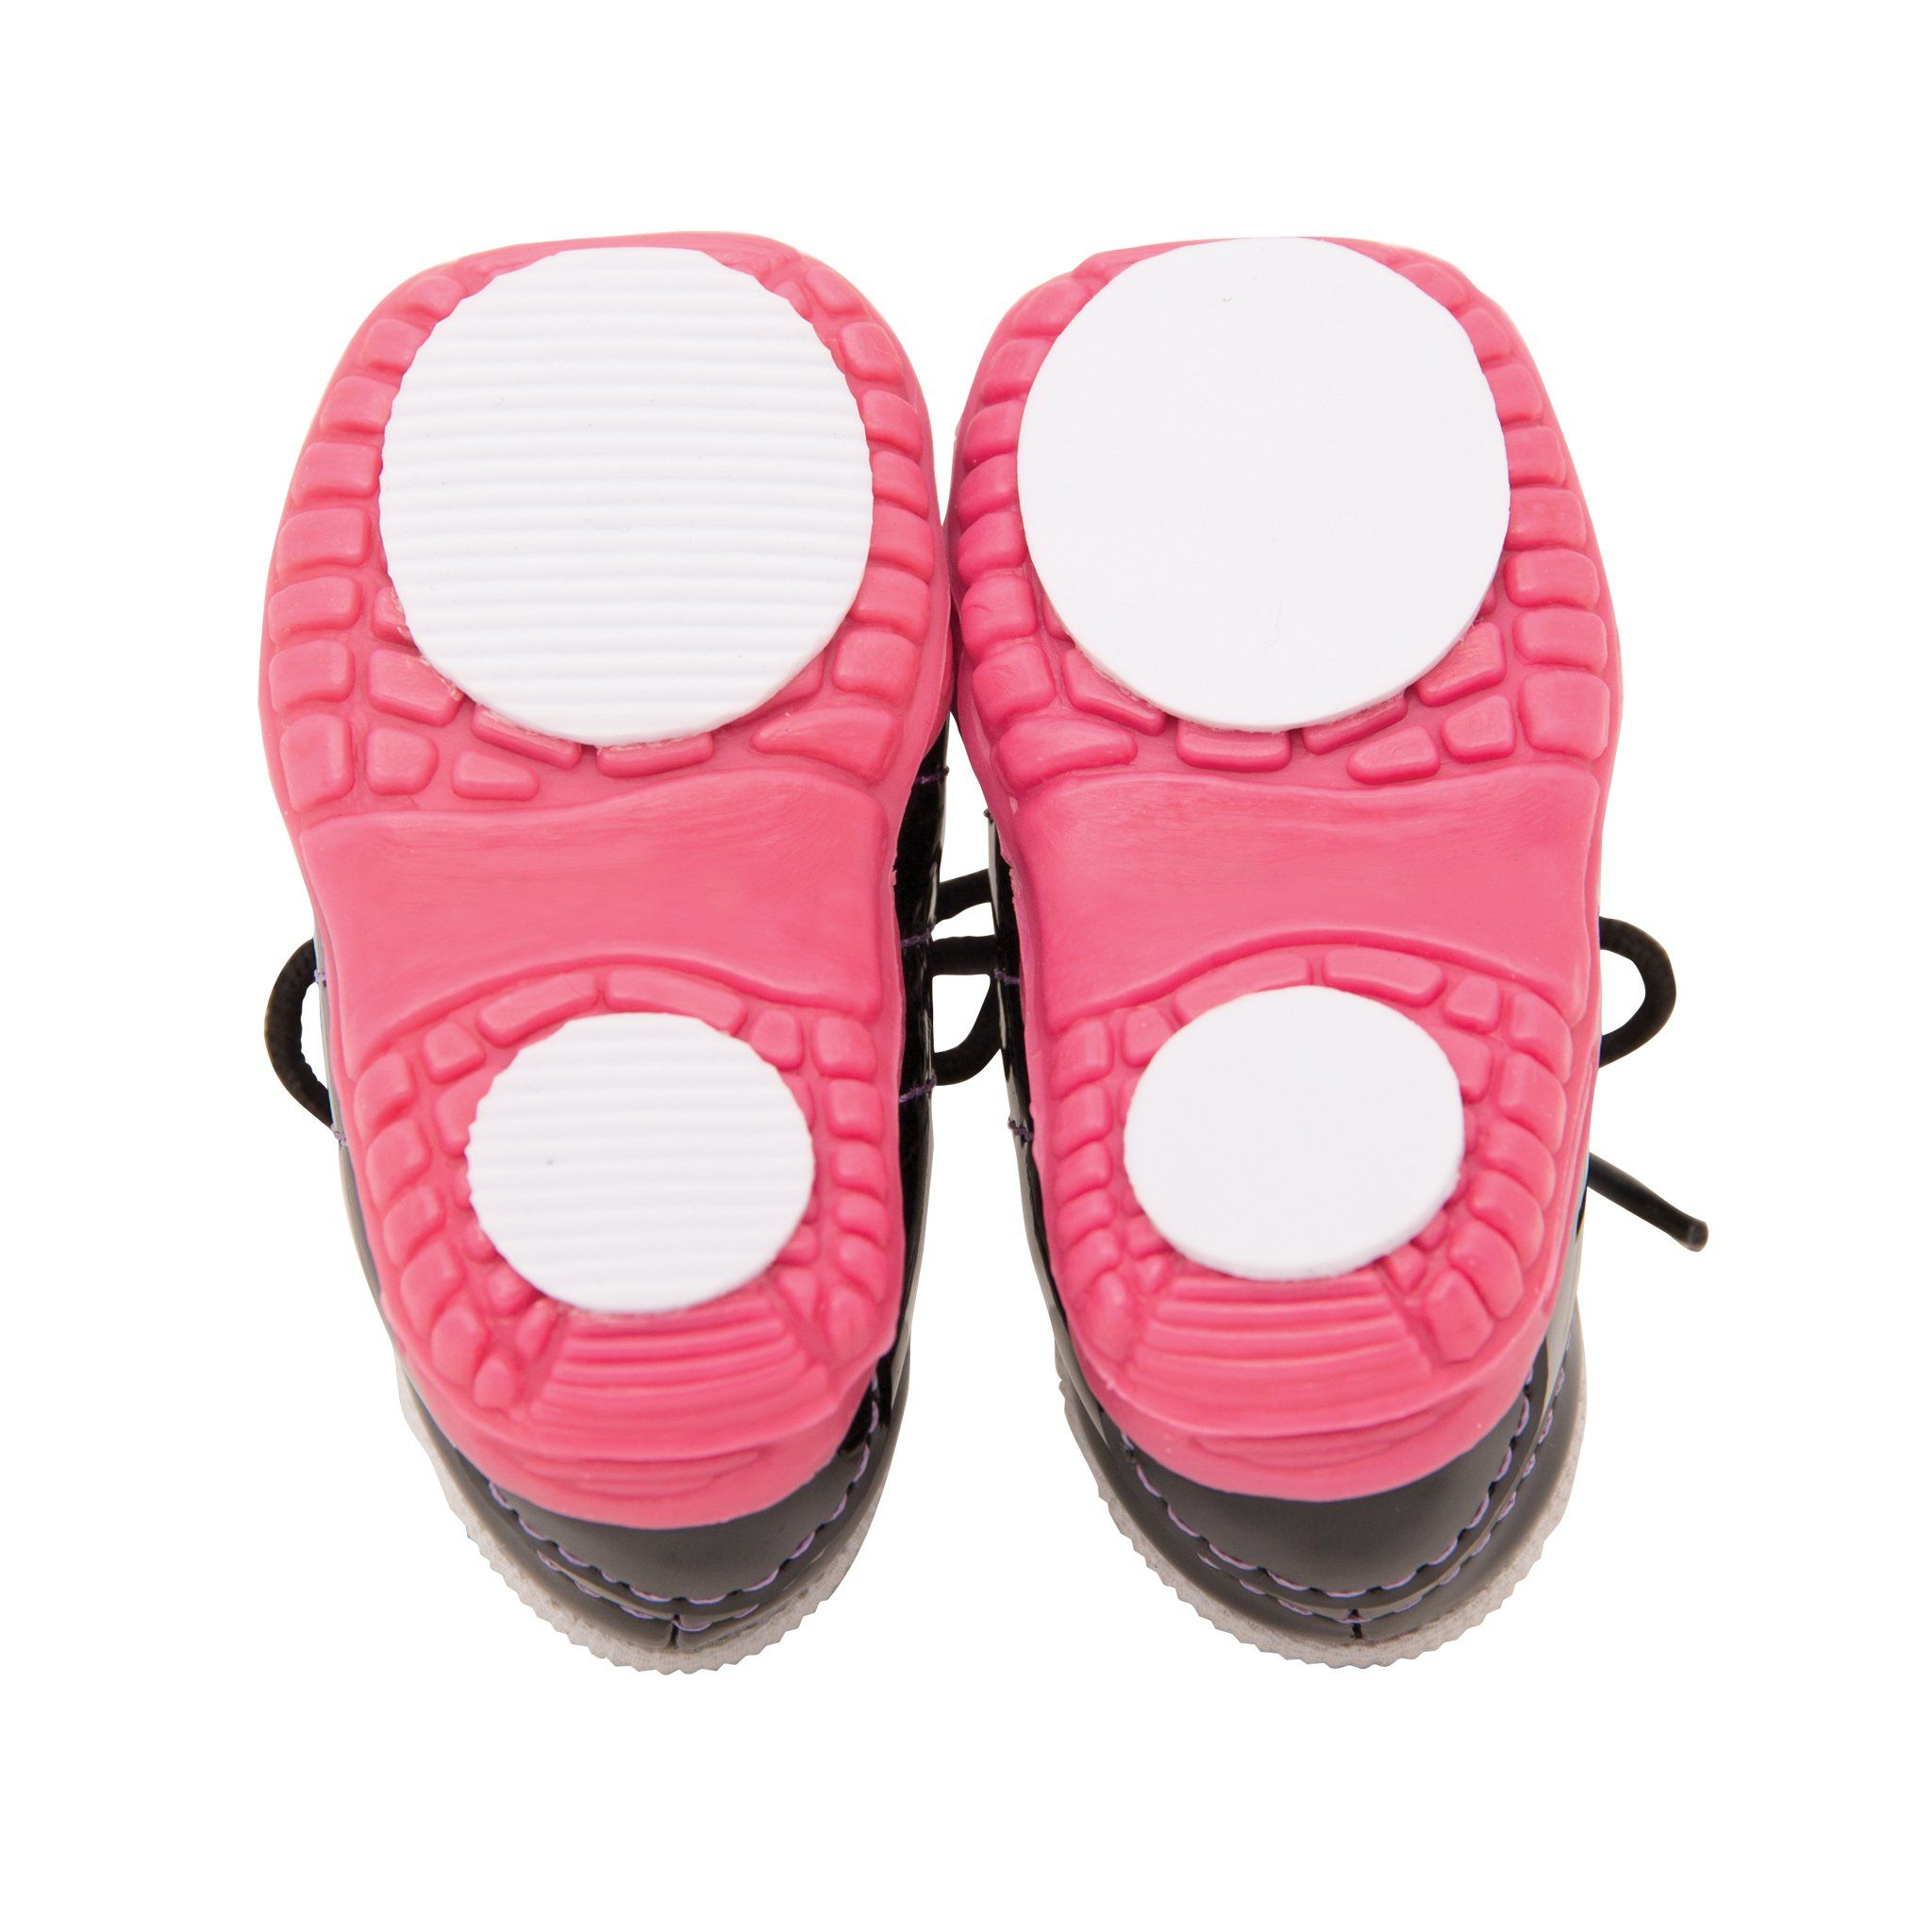 Curing play set curling shoes soles - showing gripper and slider soles. Fits all 18 inch dolls.